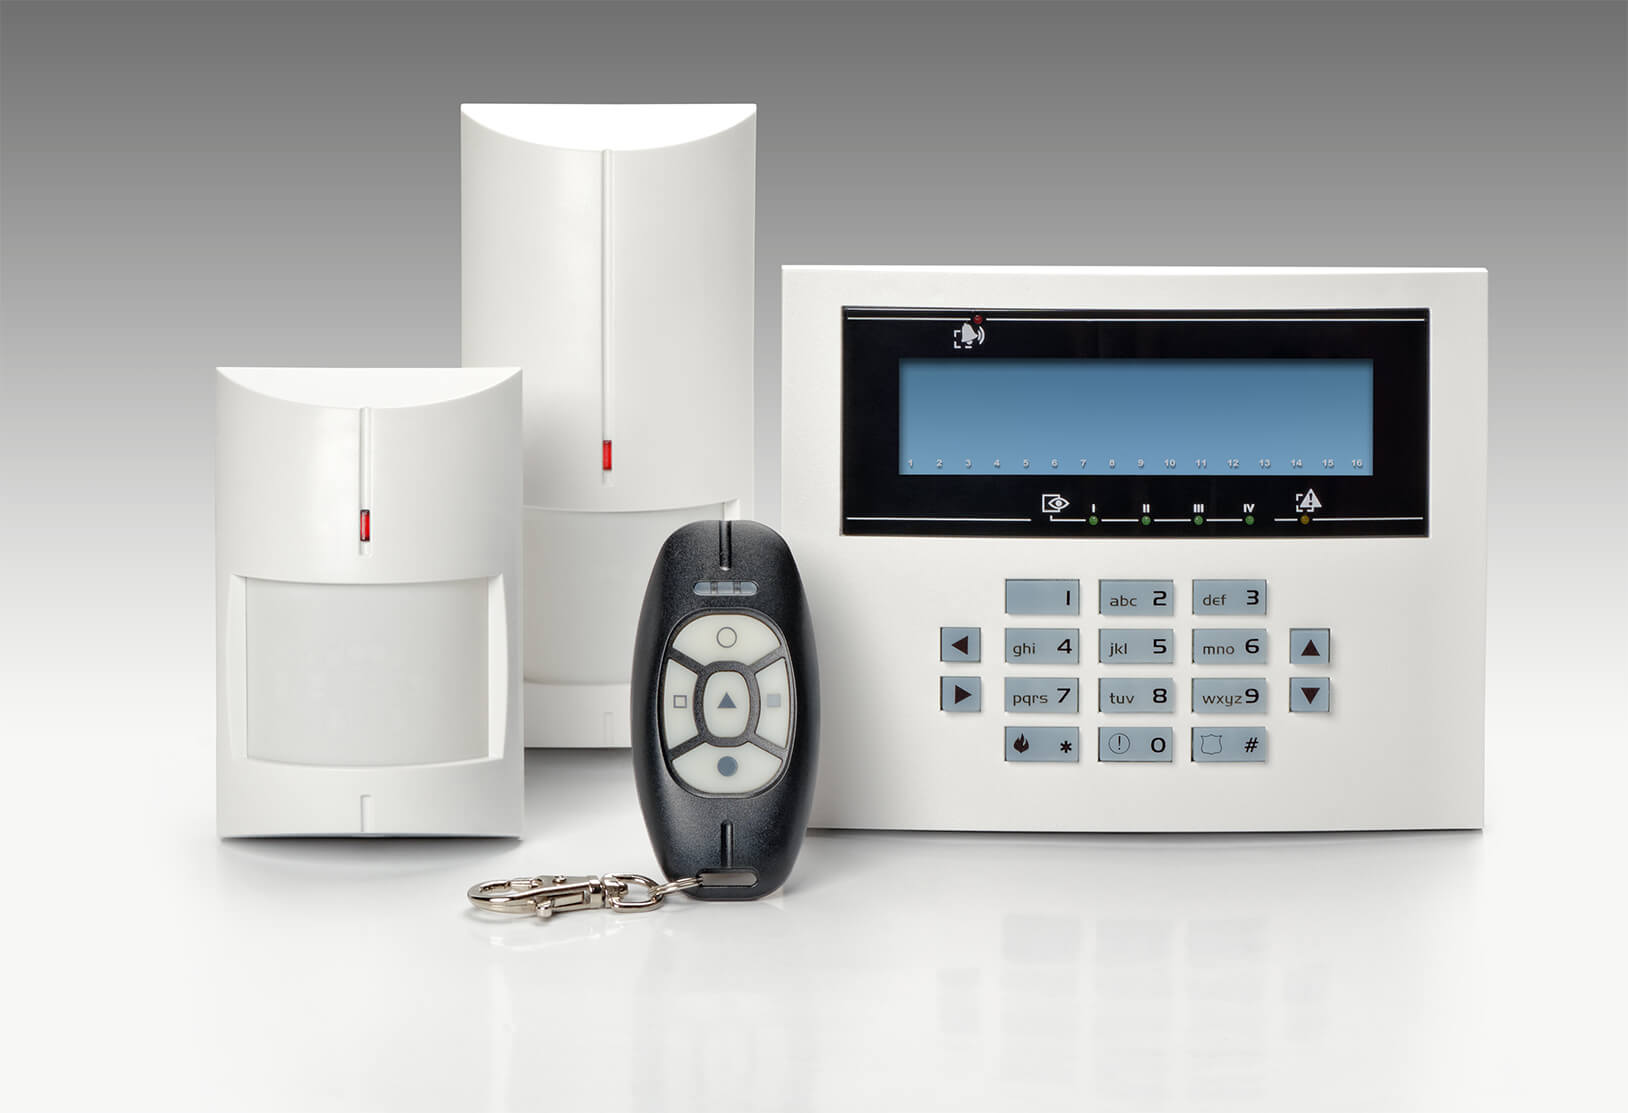 Business & Residential NACOSS Approved Burglar Alarms In South Woodford E18 - Local South Woodford E18 security company.Call 02078872244 - Dedicated to Safety & Security. Companies, shops and homes ..